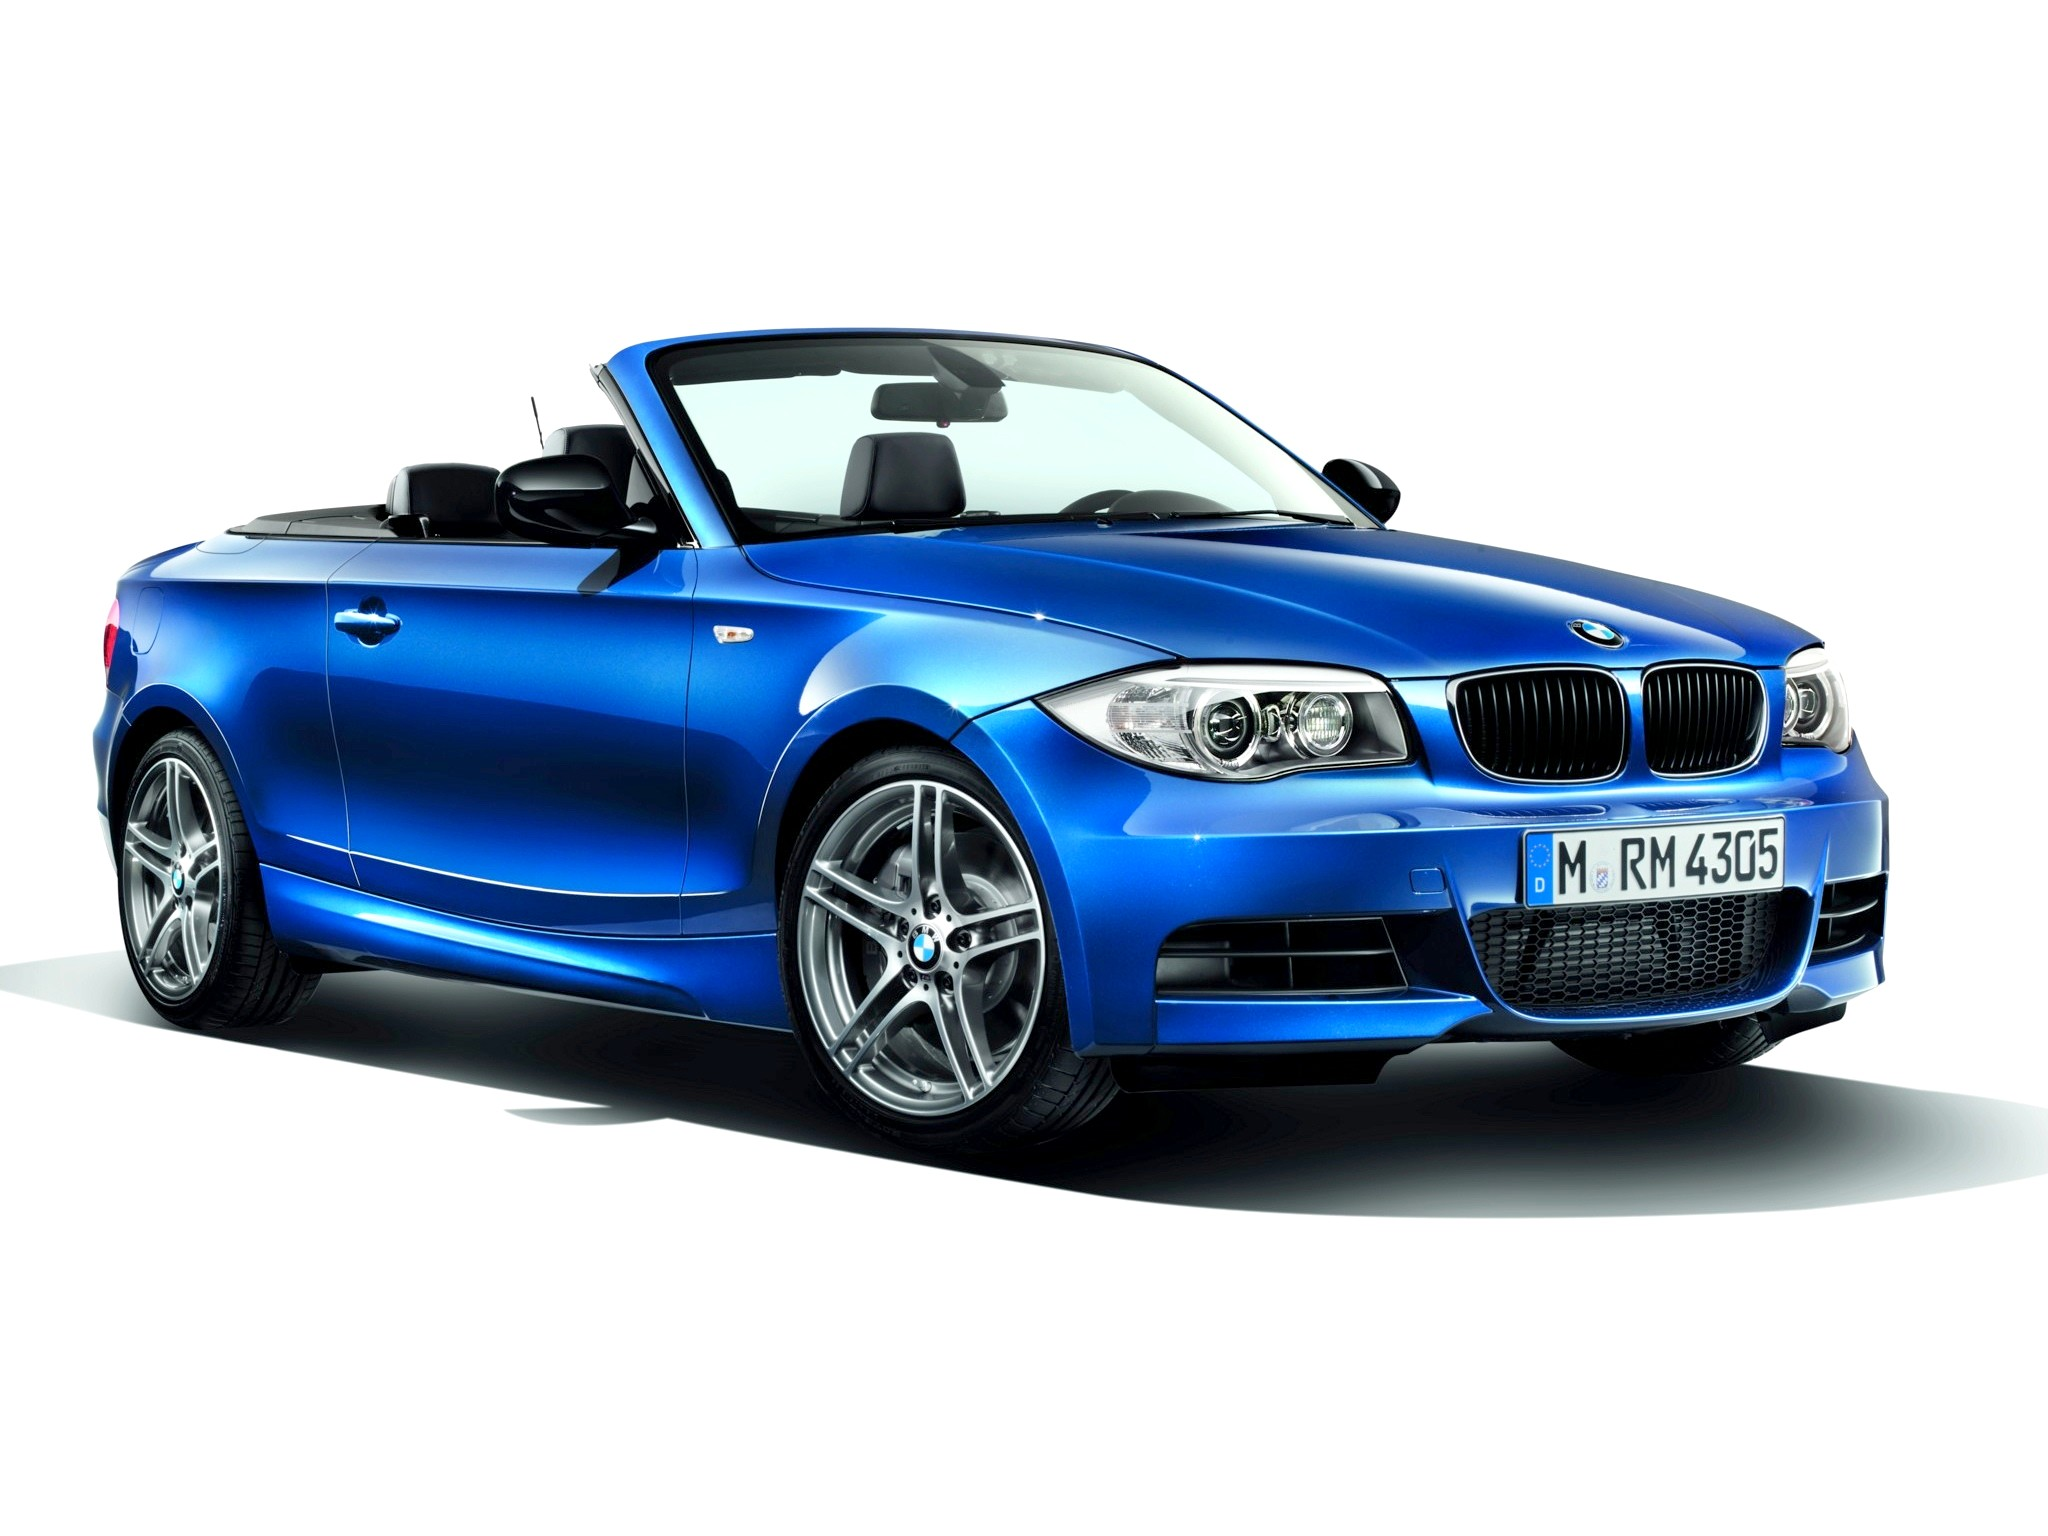 BMW 1 series 135is 2012 photo - 2